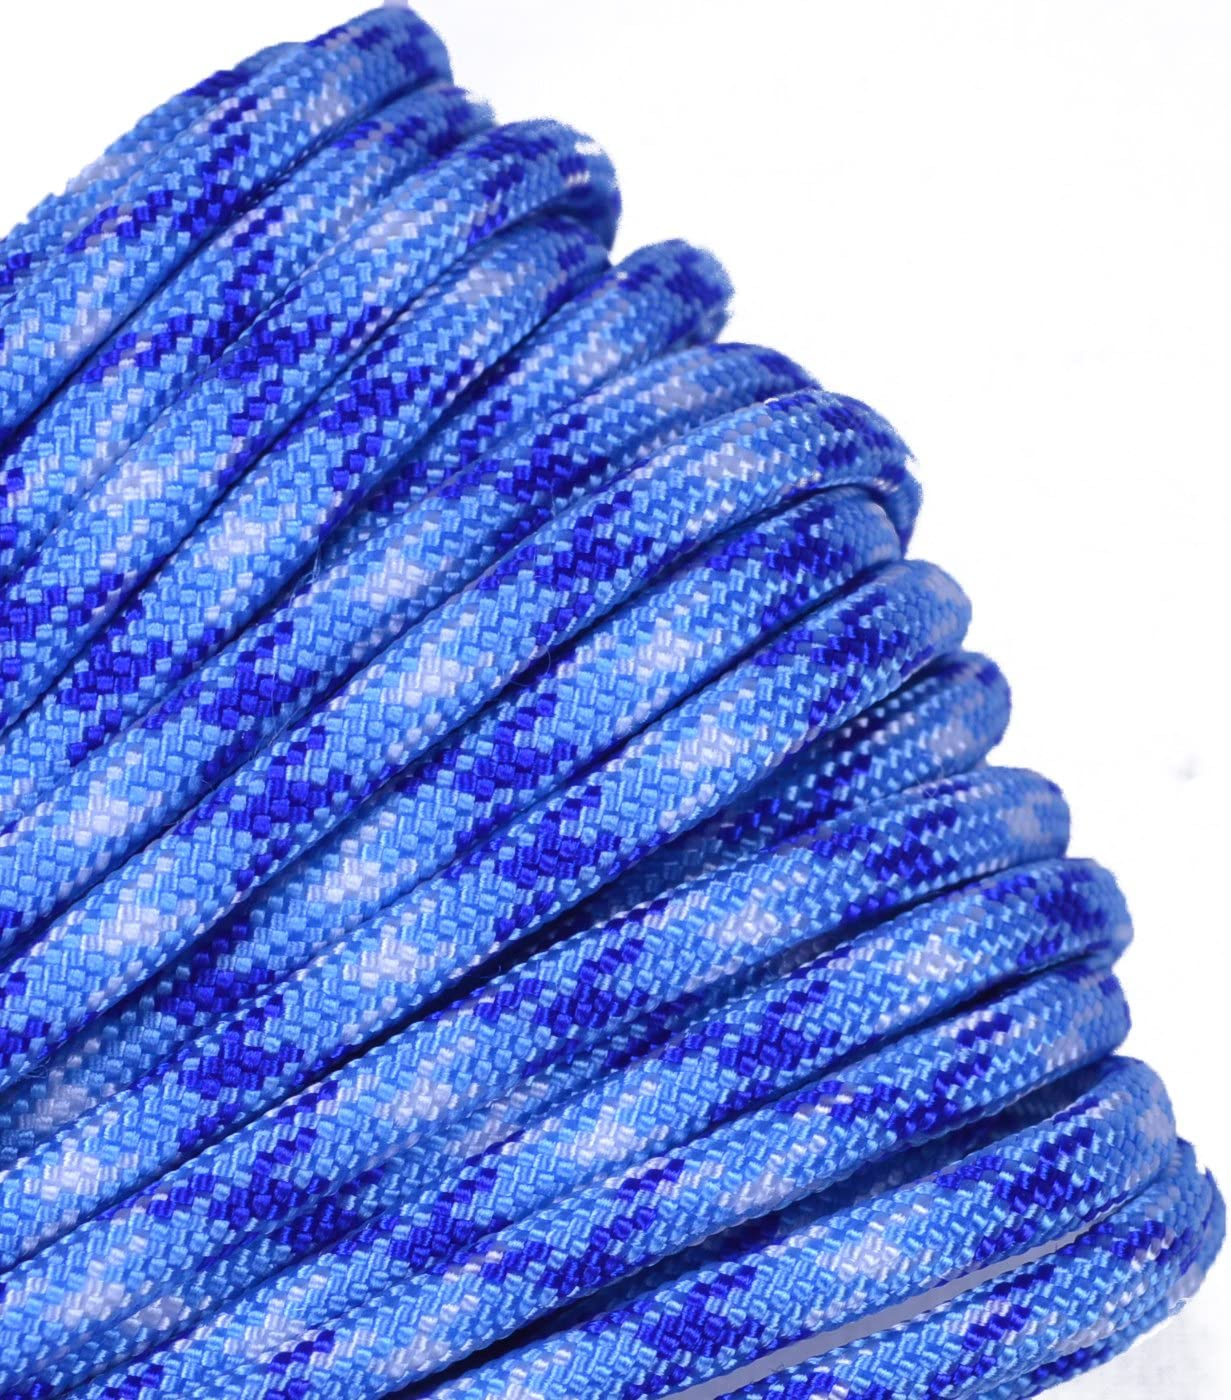 Electric Blue and Silver Stripes 550 Paracord for Paracord Crafts 100 Feet Made in the United States